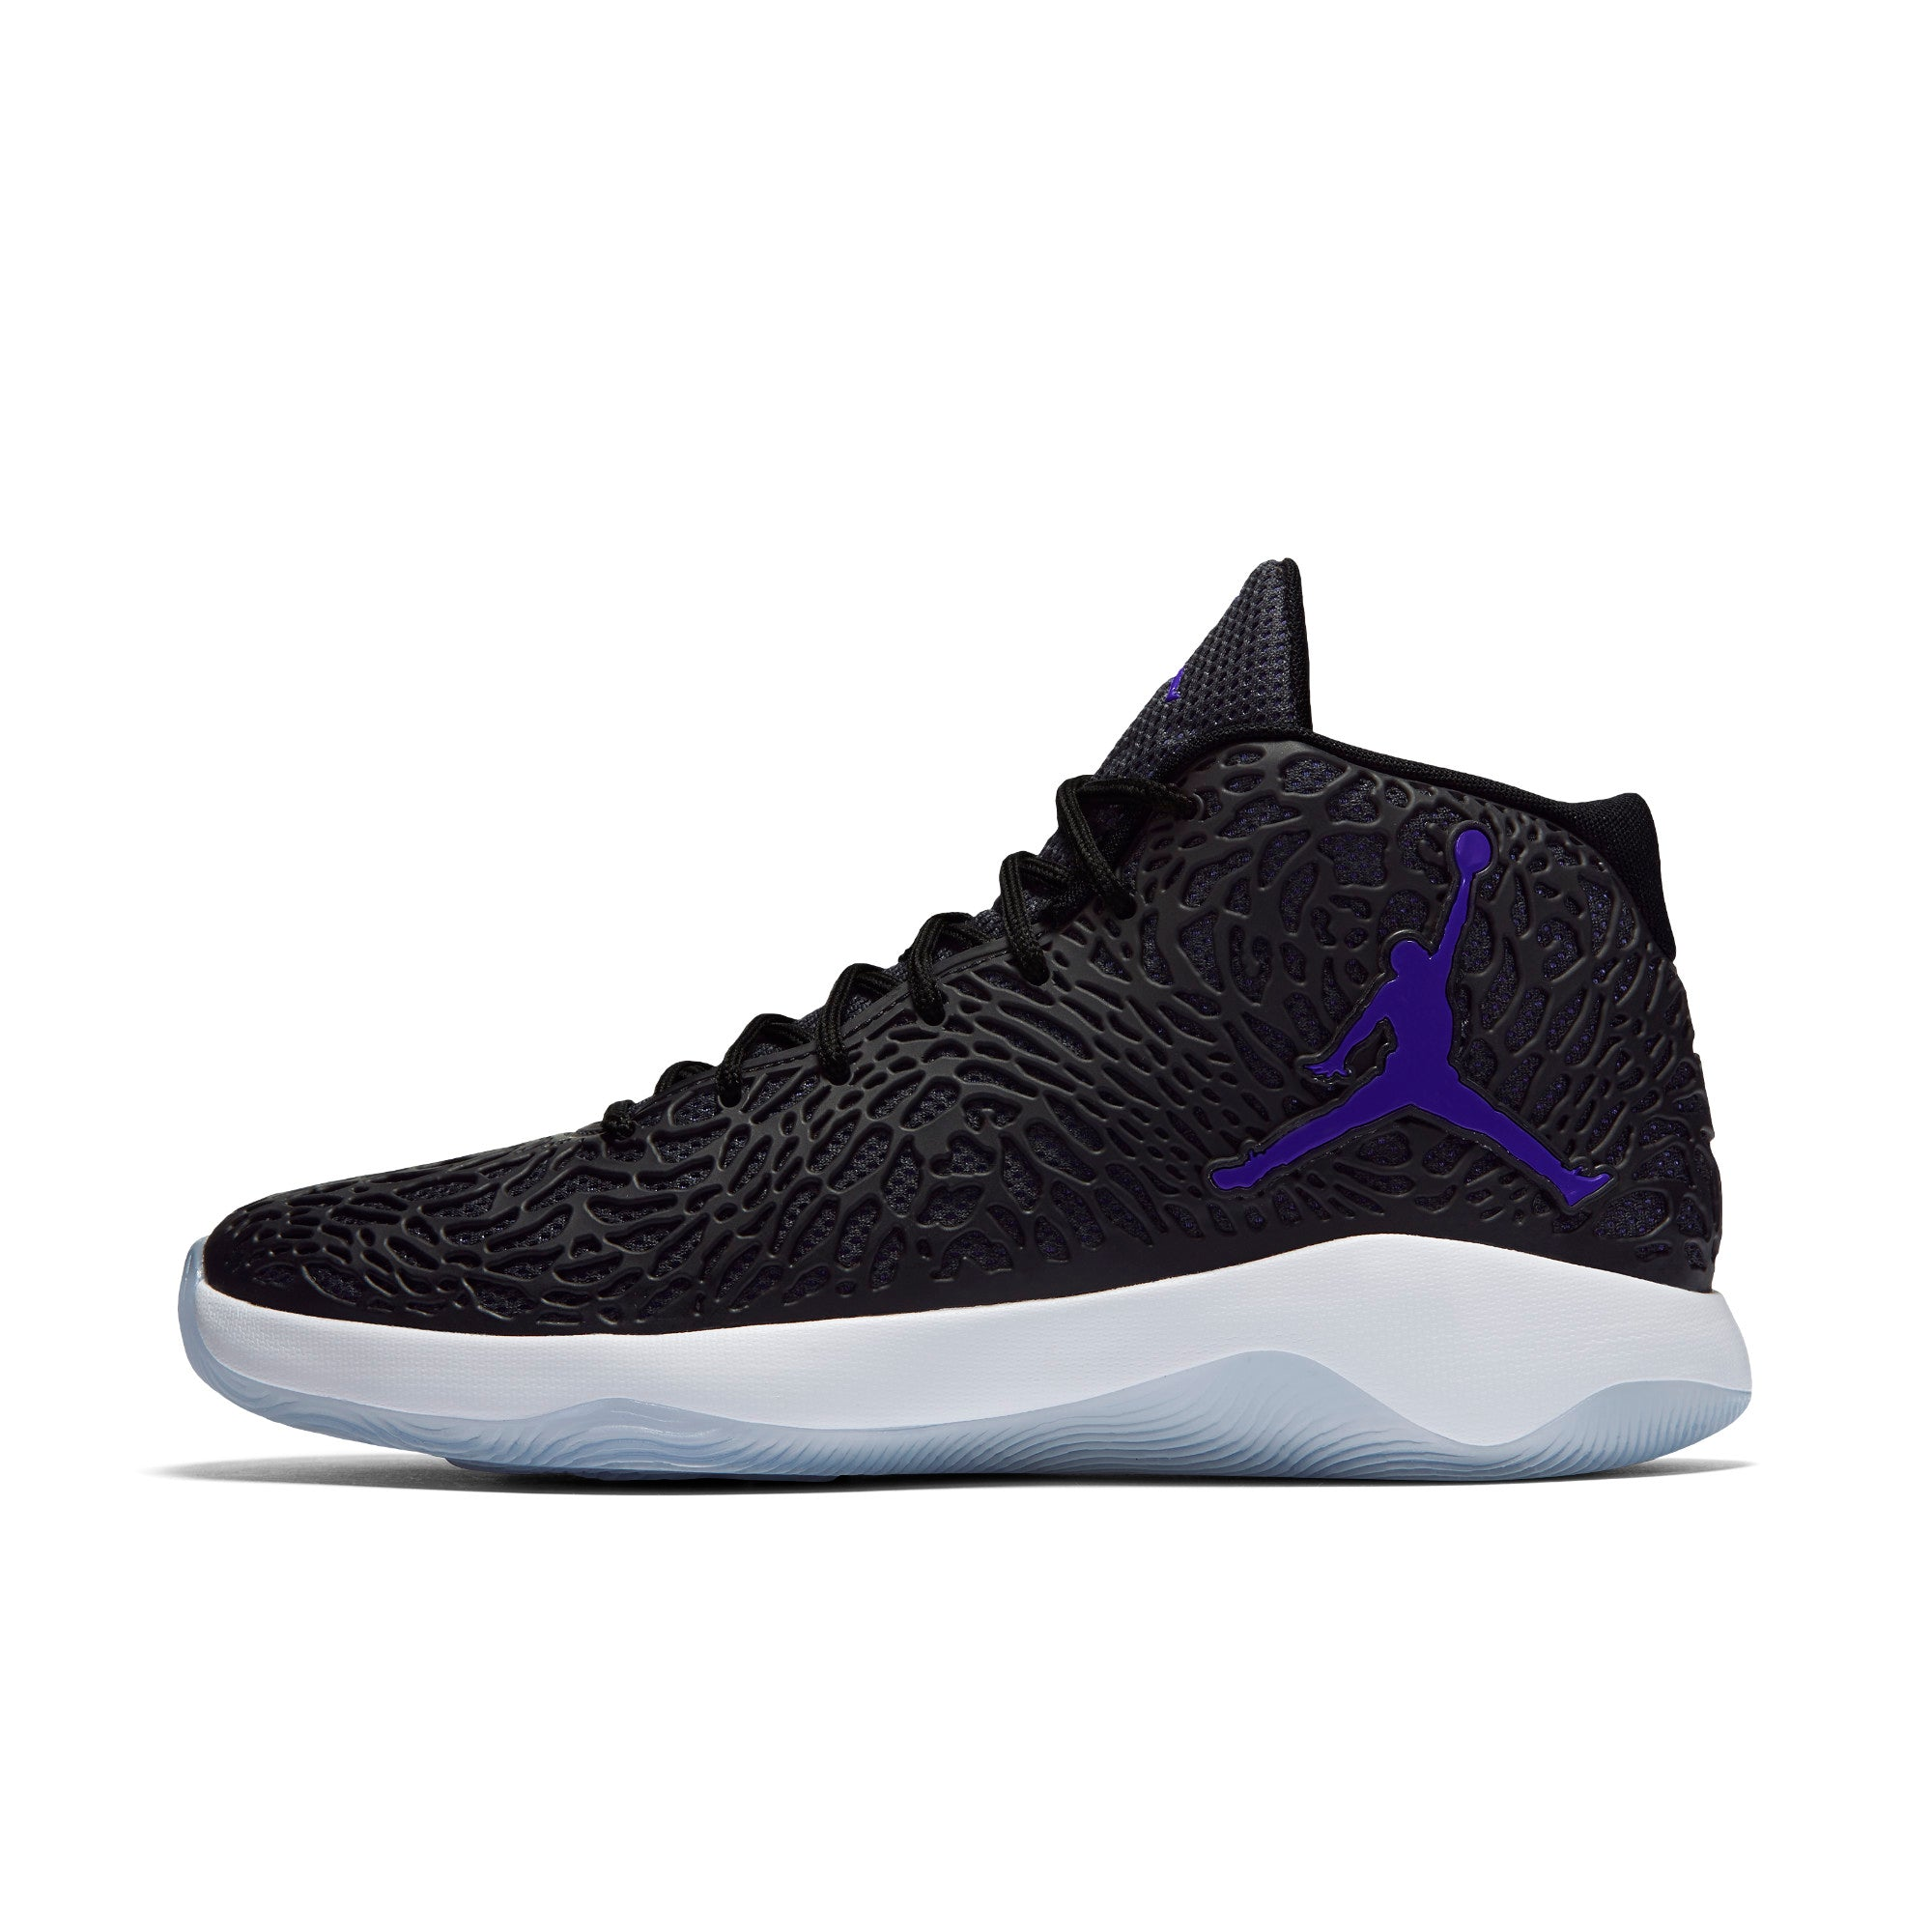 Nike Jordan Ultra.Fly Shoe Basketball Boot/Shoe 834268-001